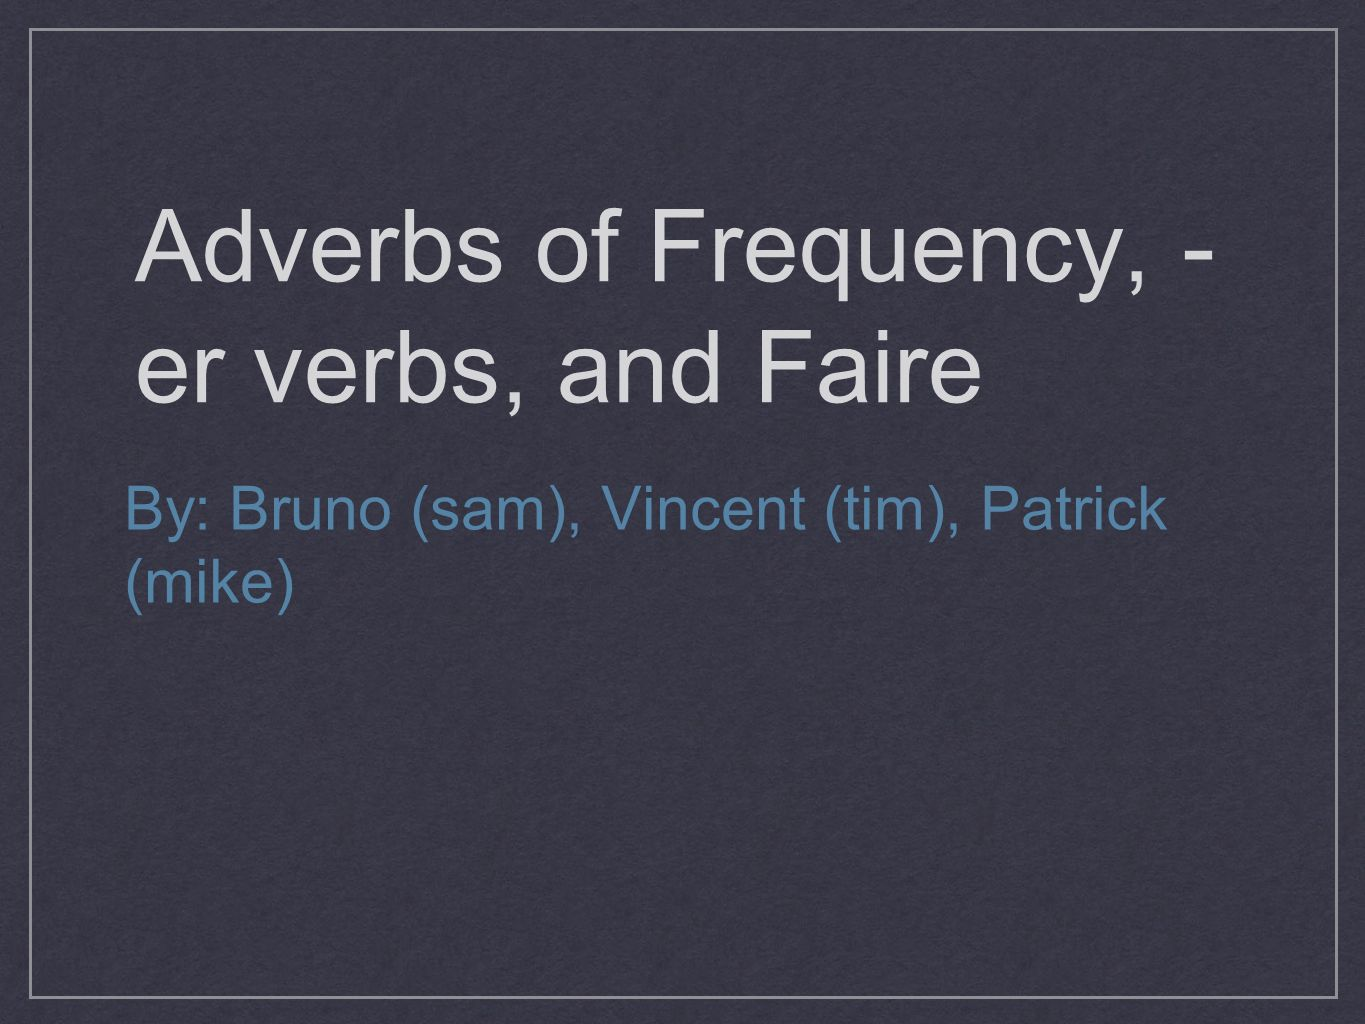 Adverbs of Frequency, -er verbs, and Faire